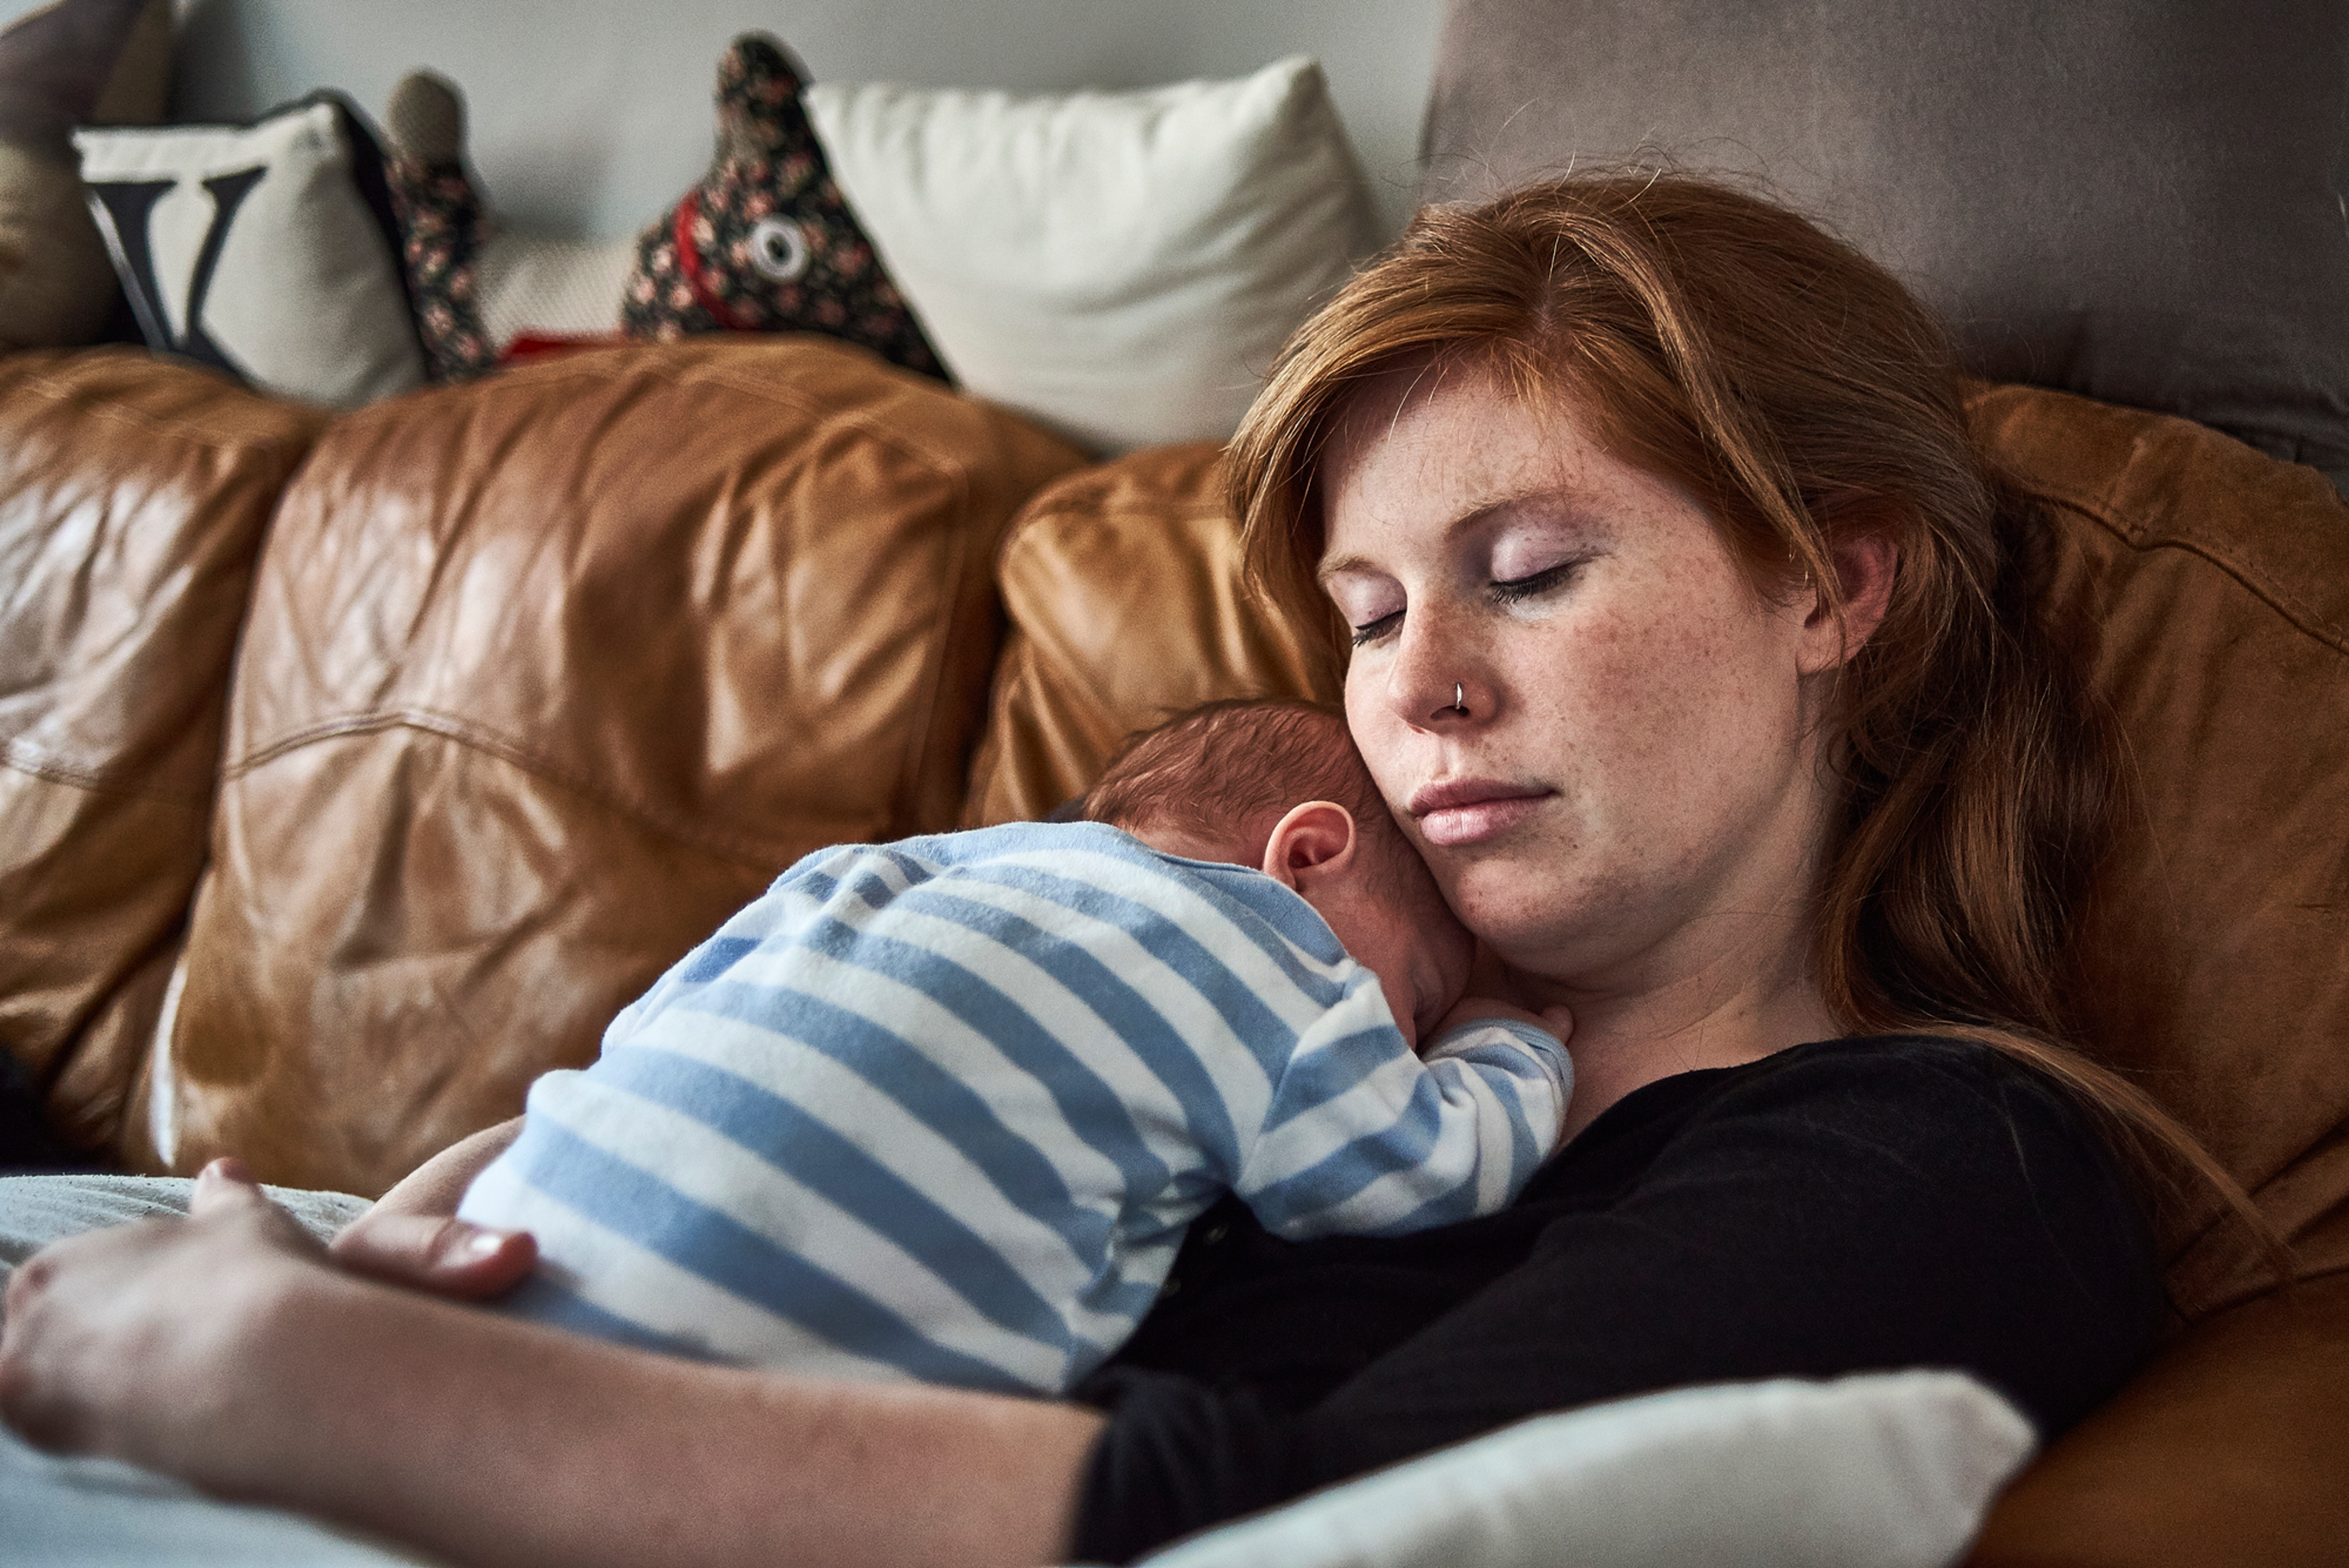 After baby: Maternal Mental Health